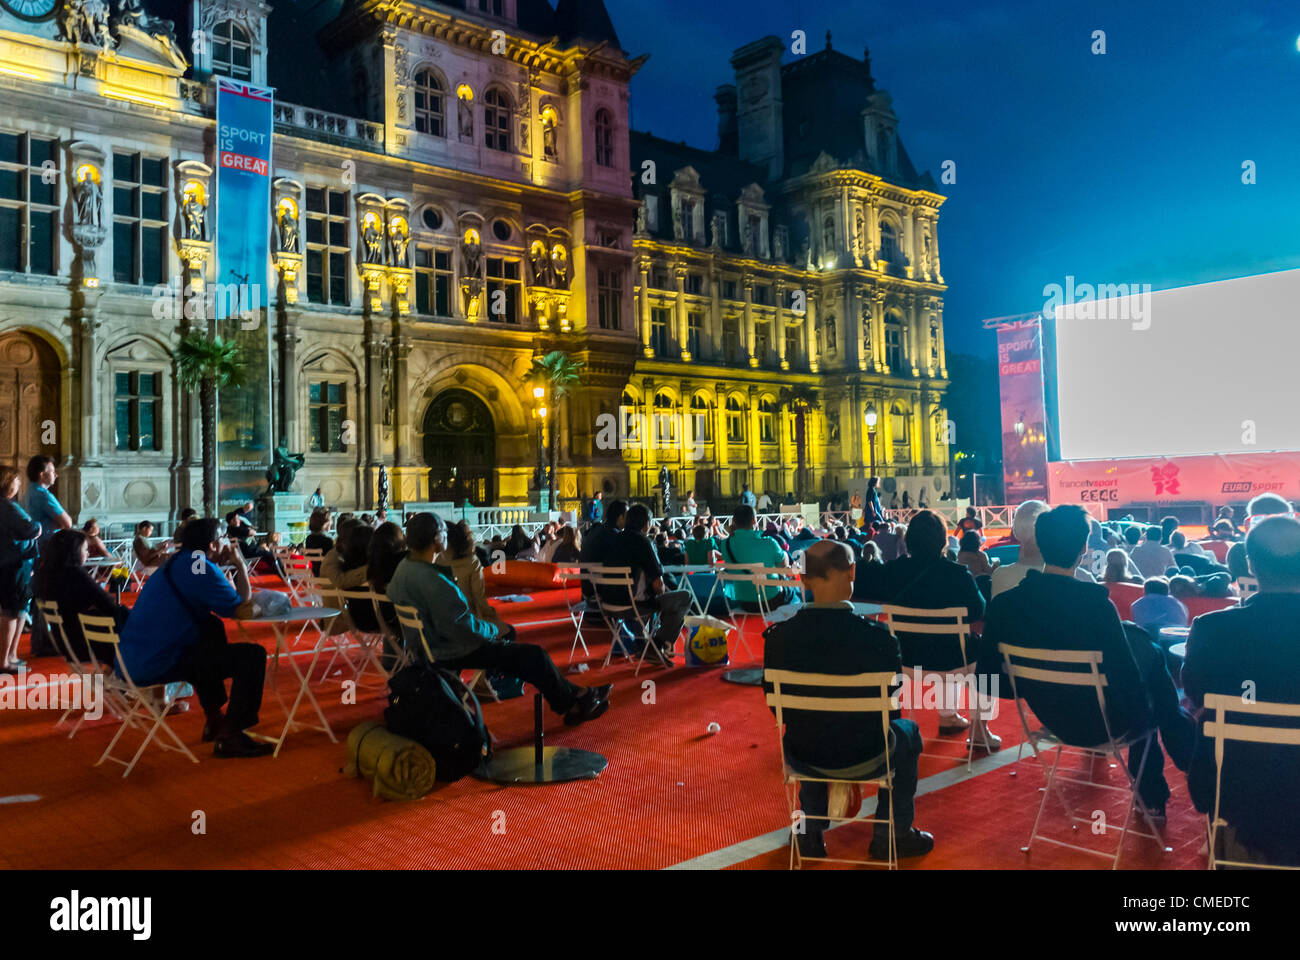 Paris, France - People Viewing Olympics, Live Broadcast on Public Screen at 'Paris Plages' Summer Events - Stock Image